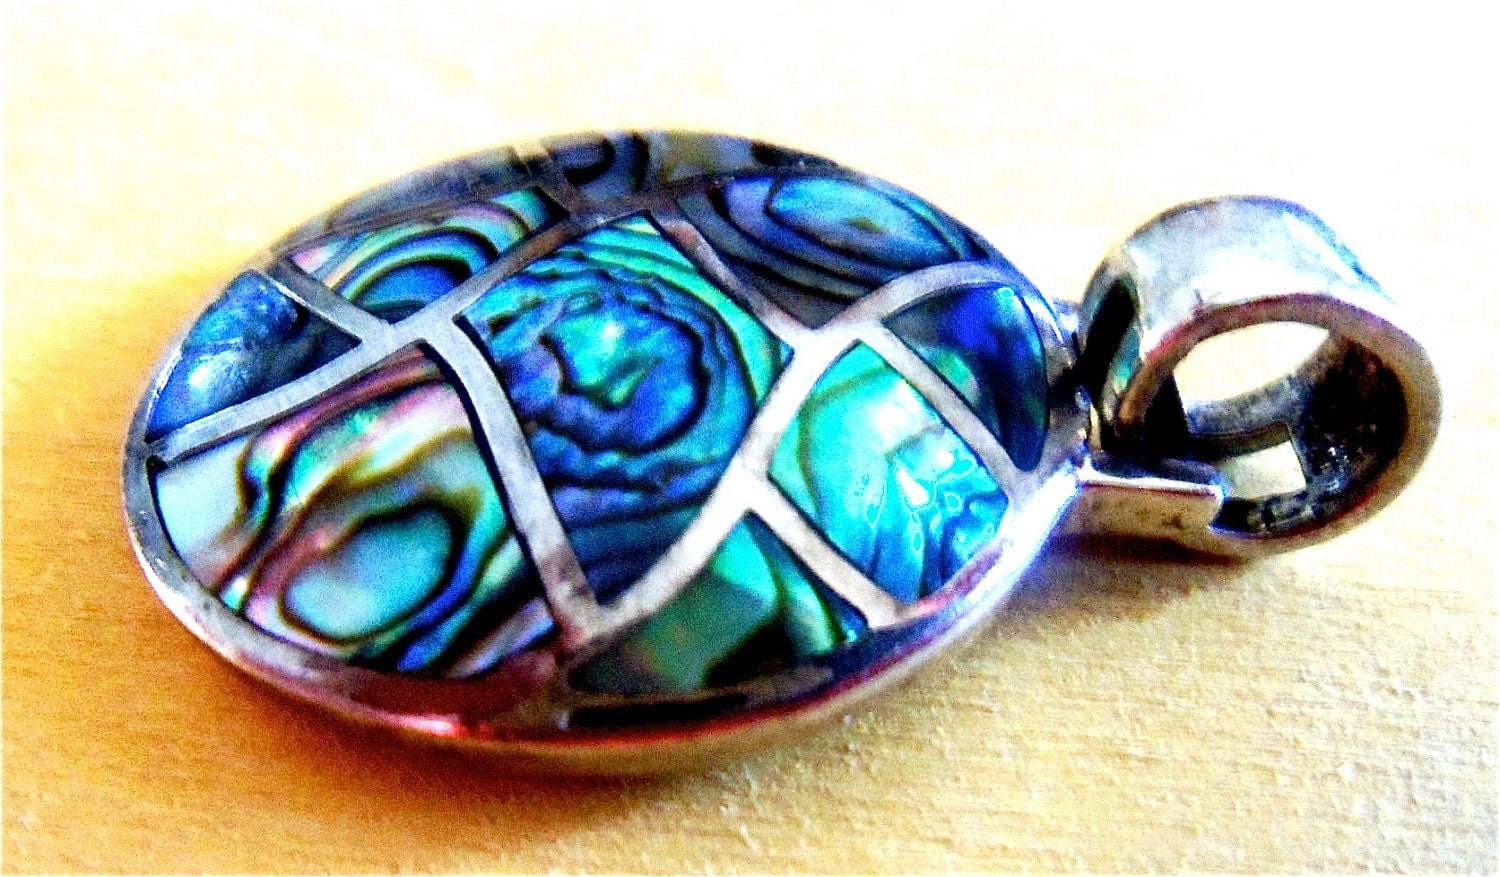 Vintage Oval Abalone Shell Pendant